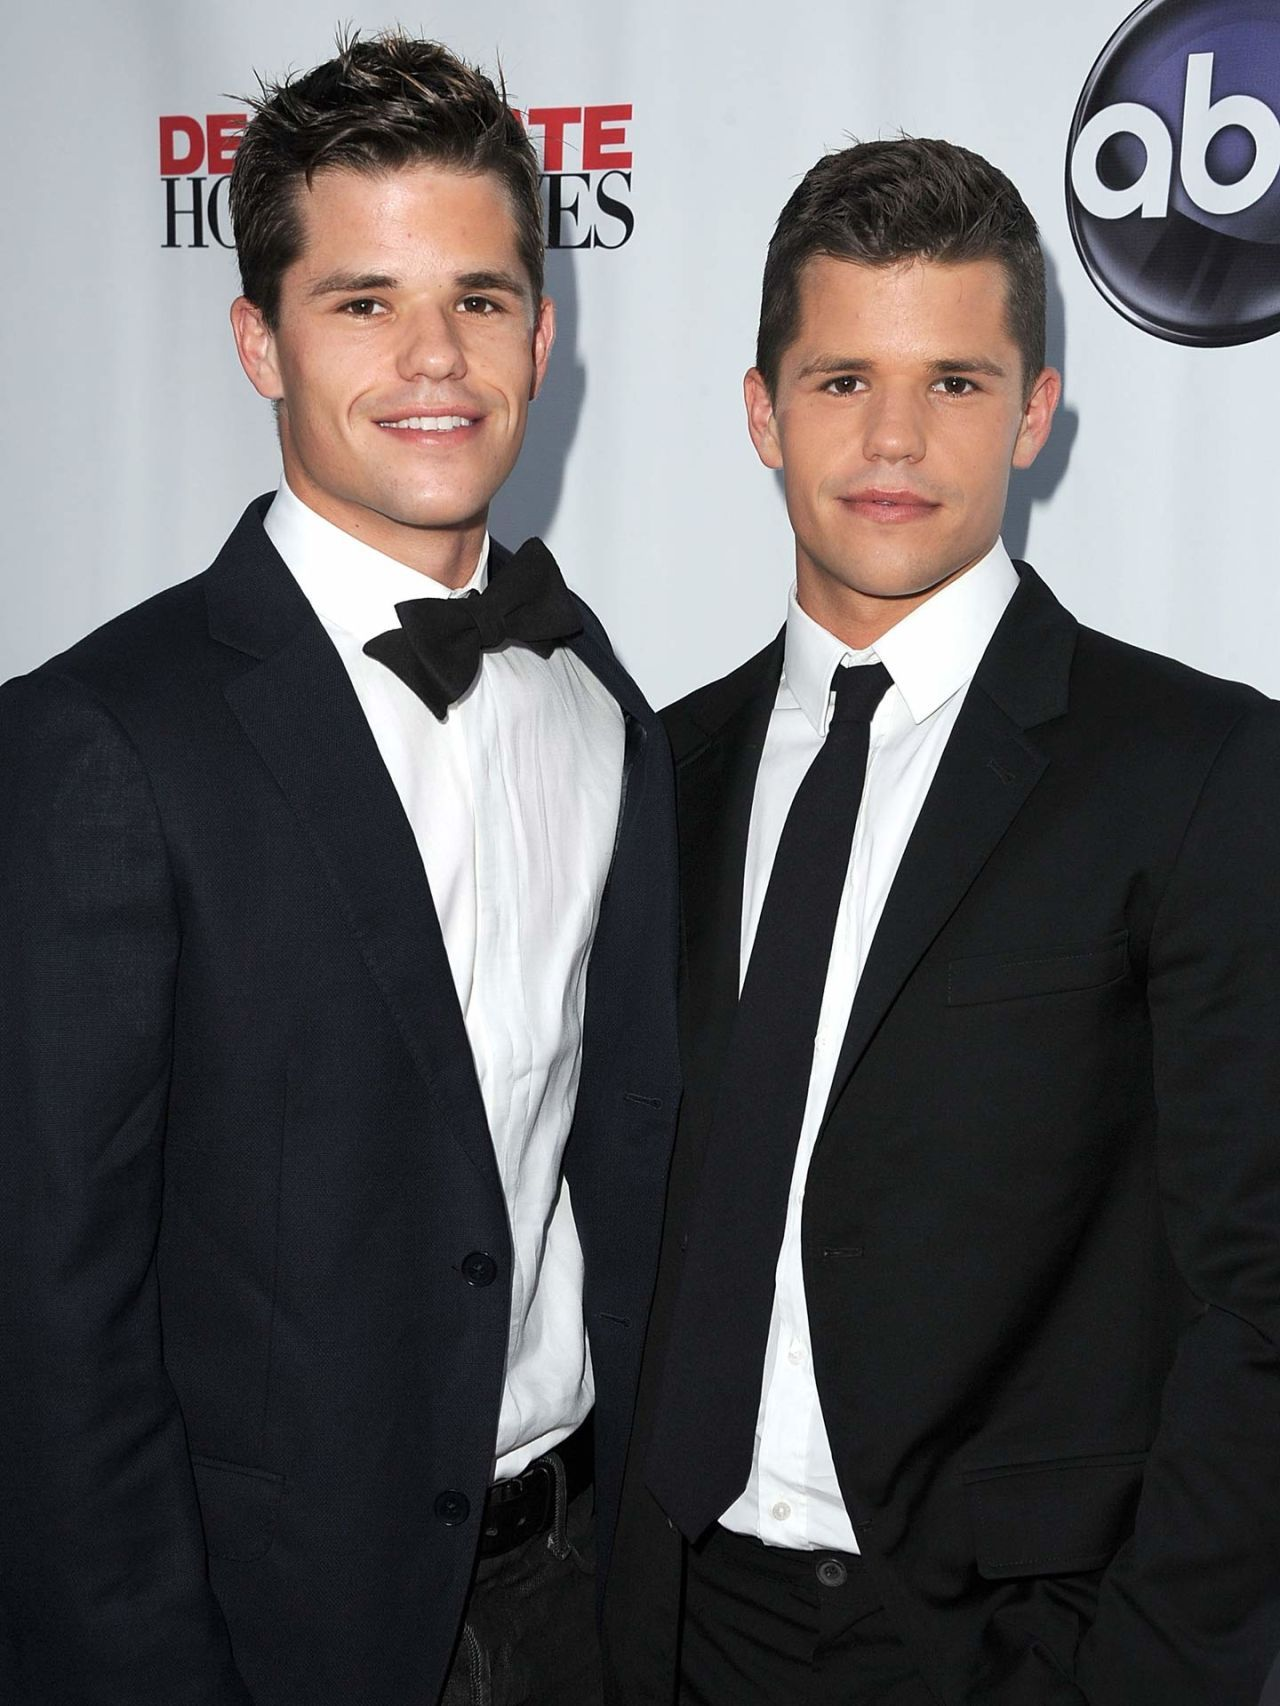 Carver twins dating each other